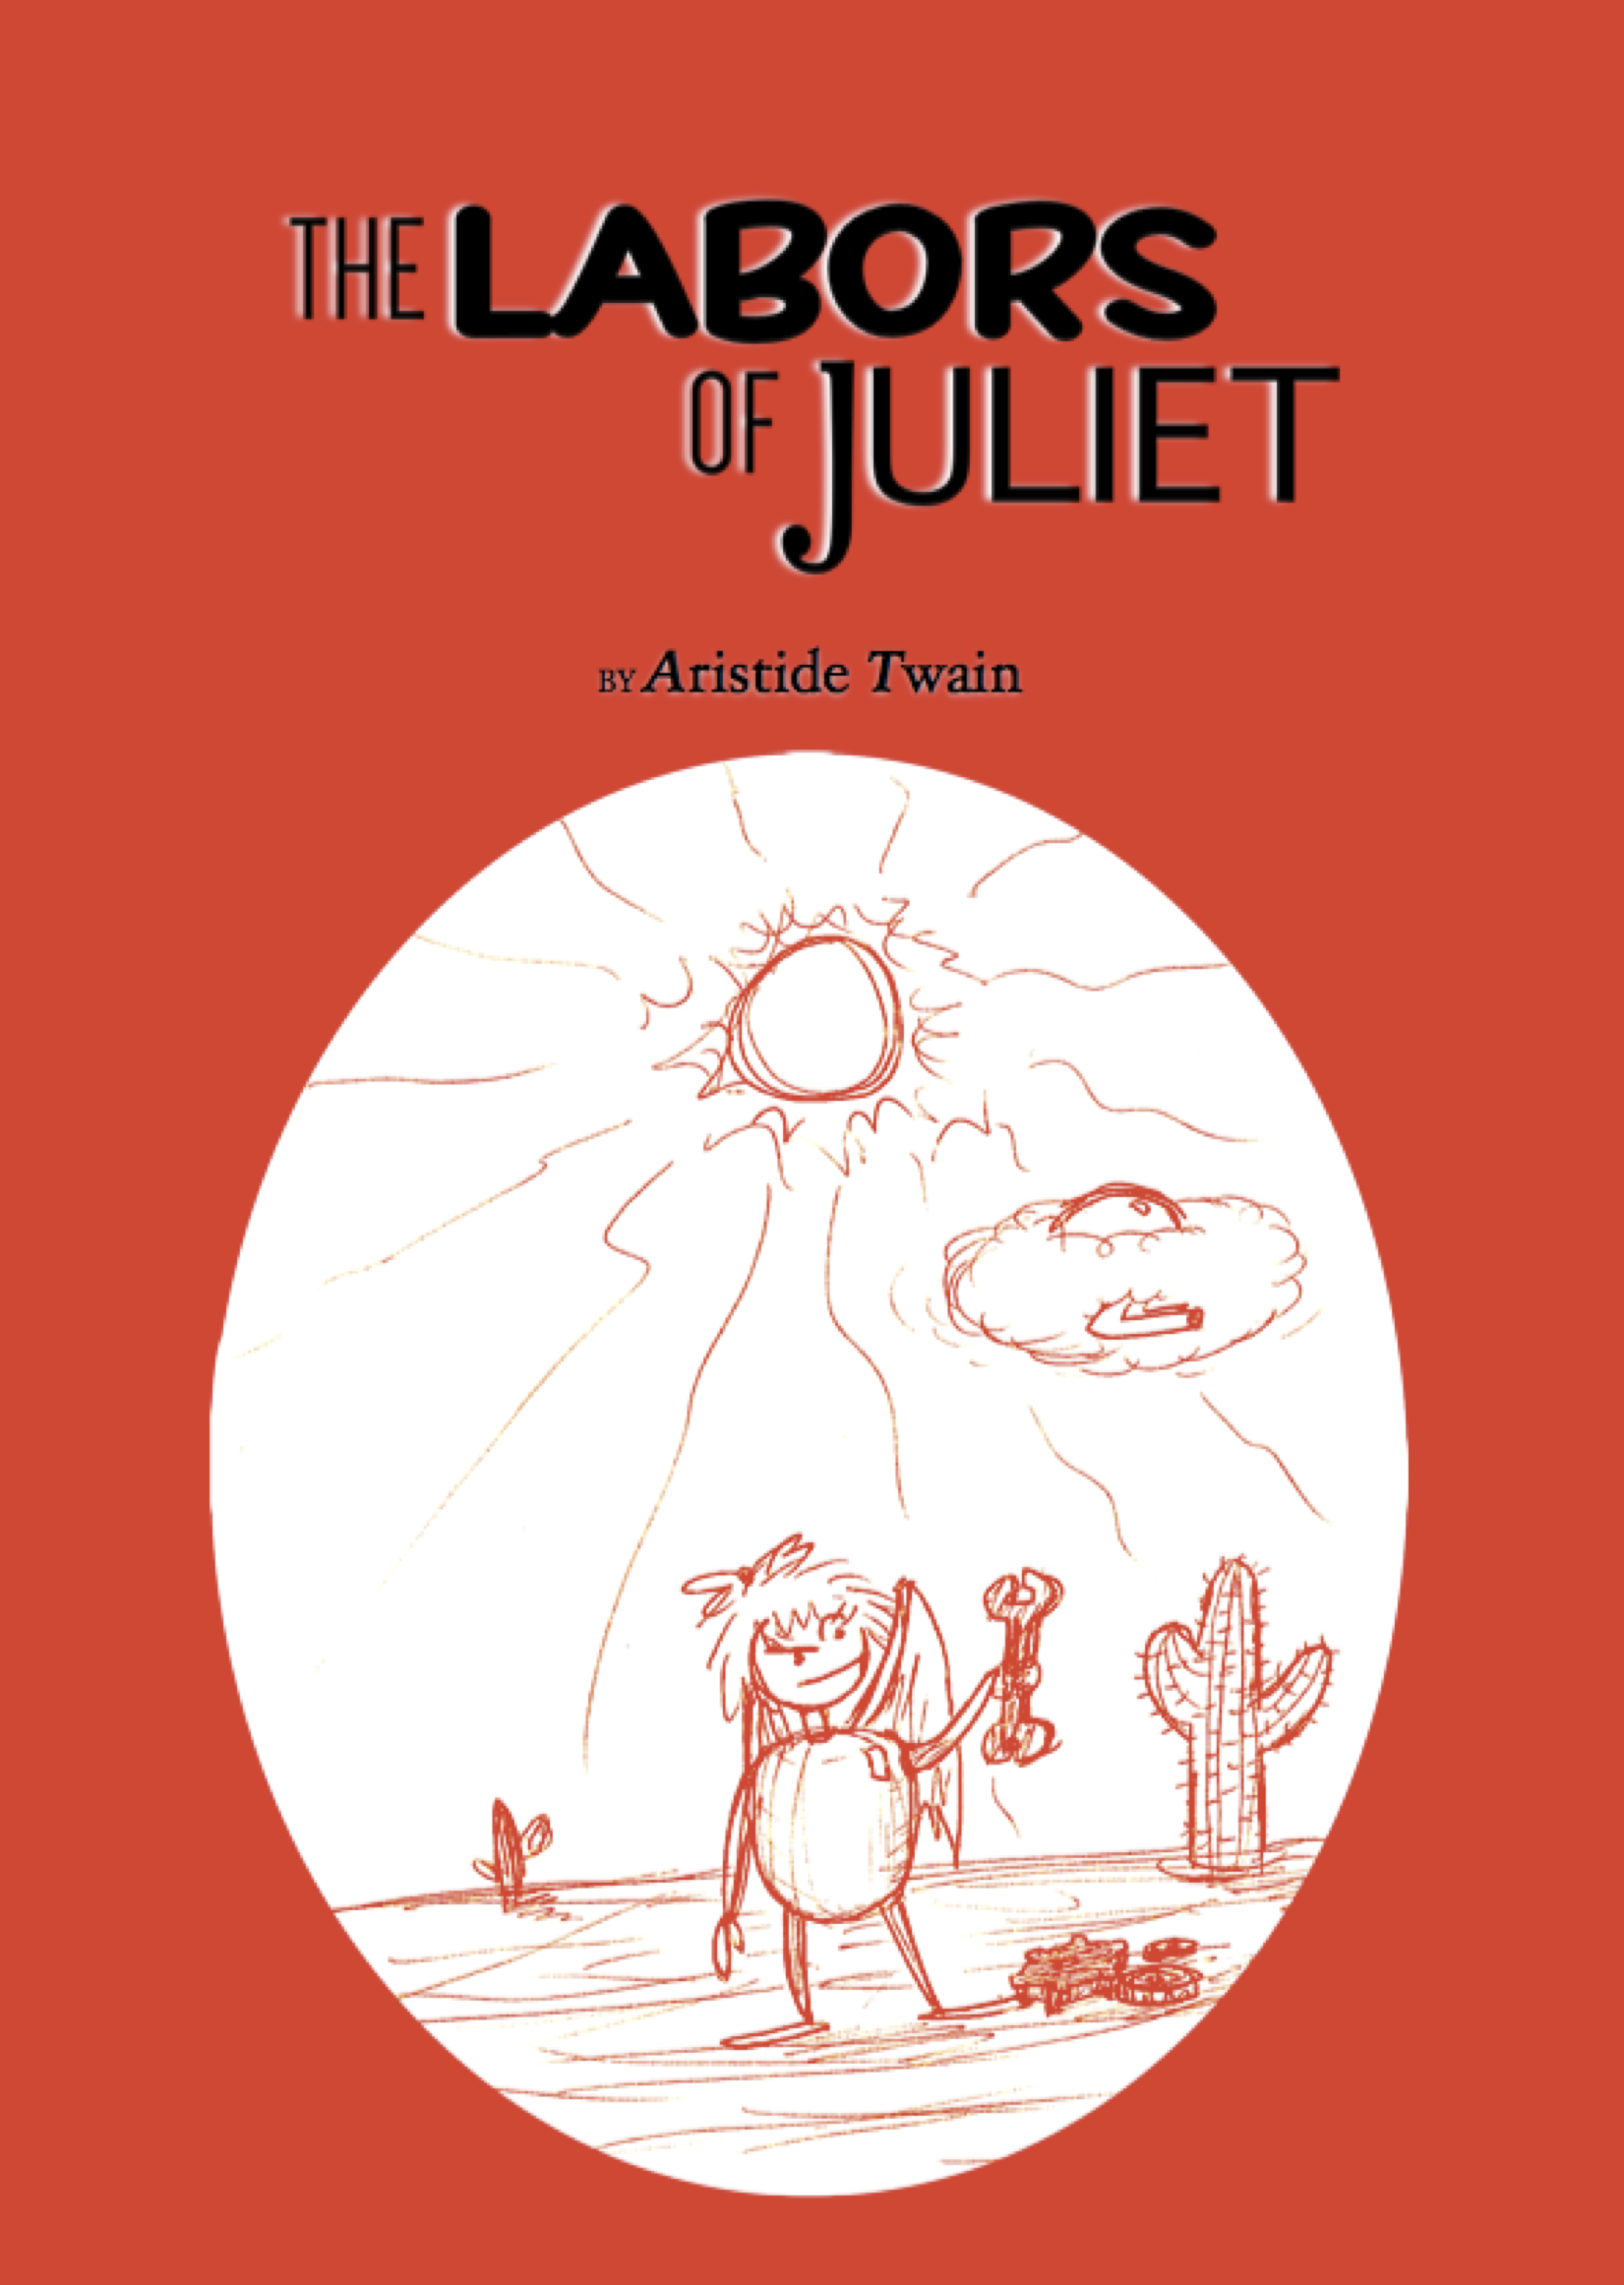 The Labors of Juliet